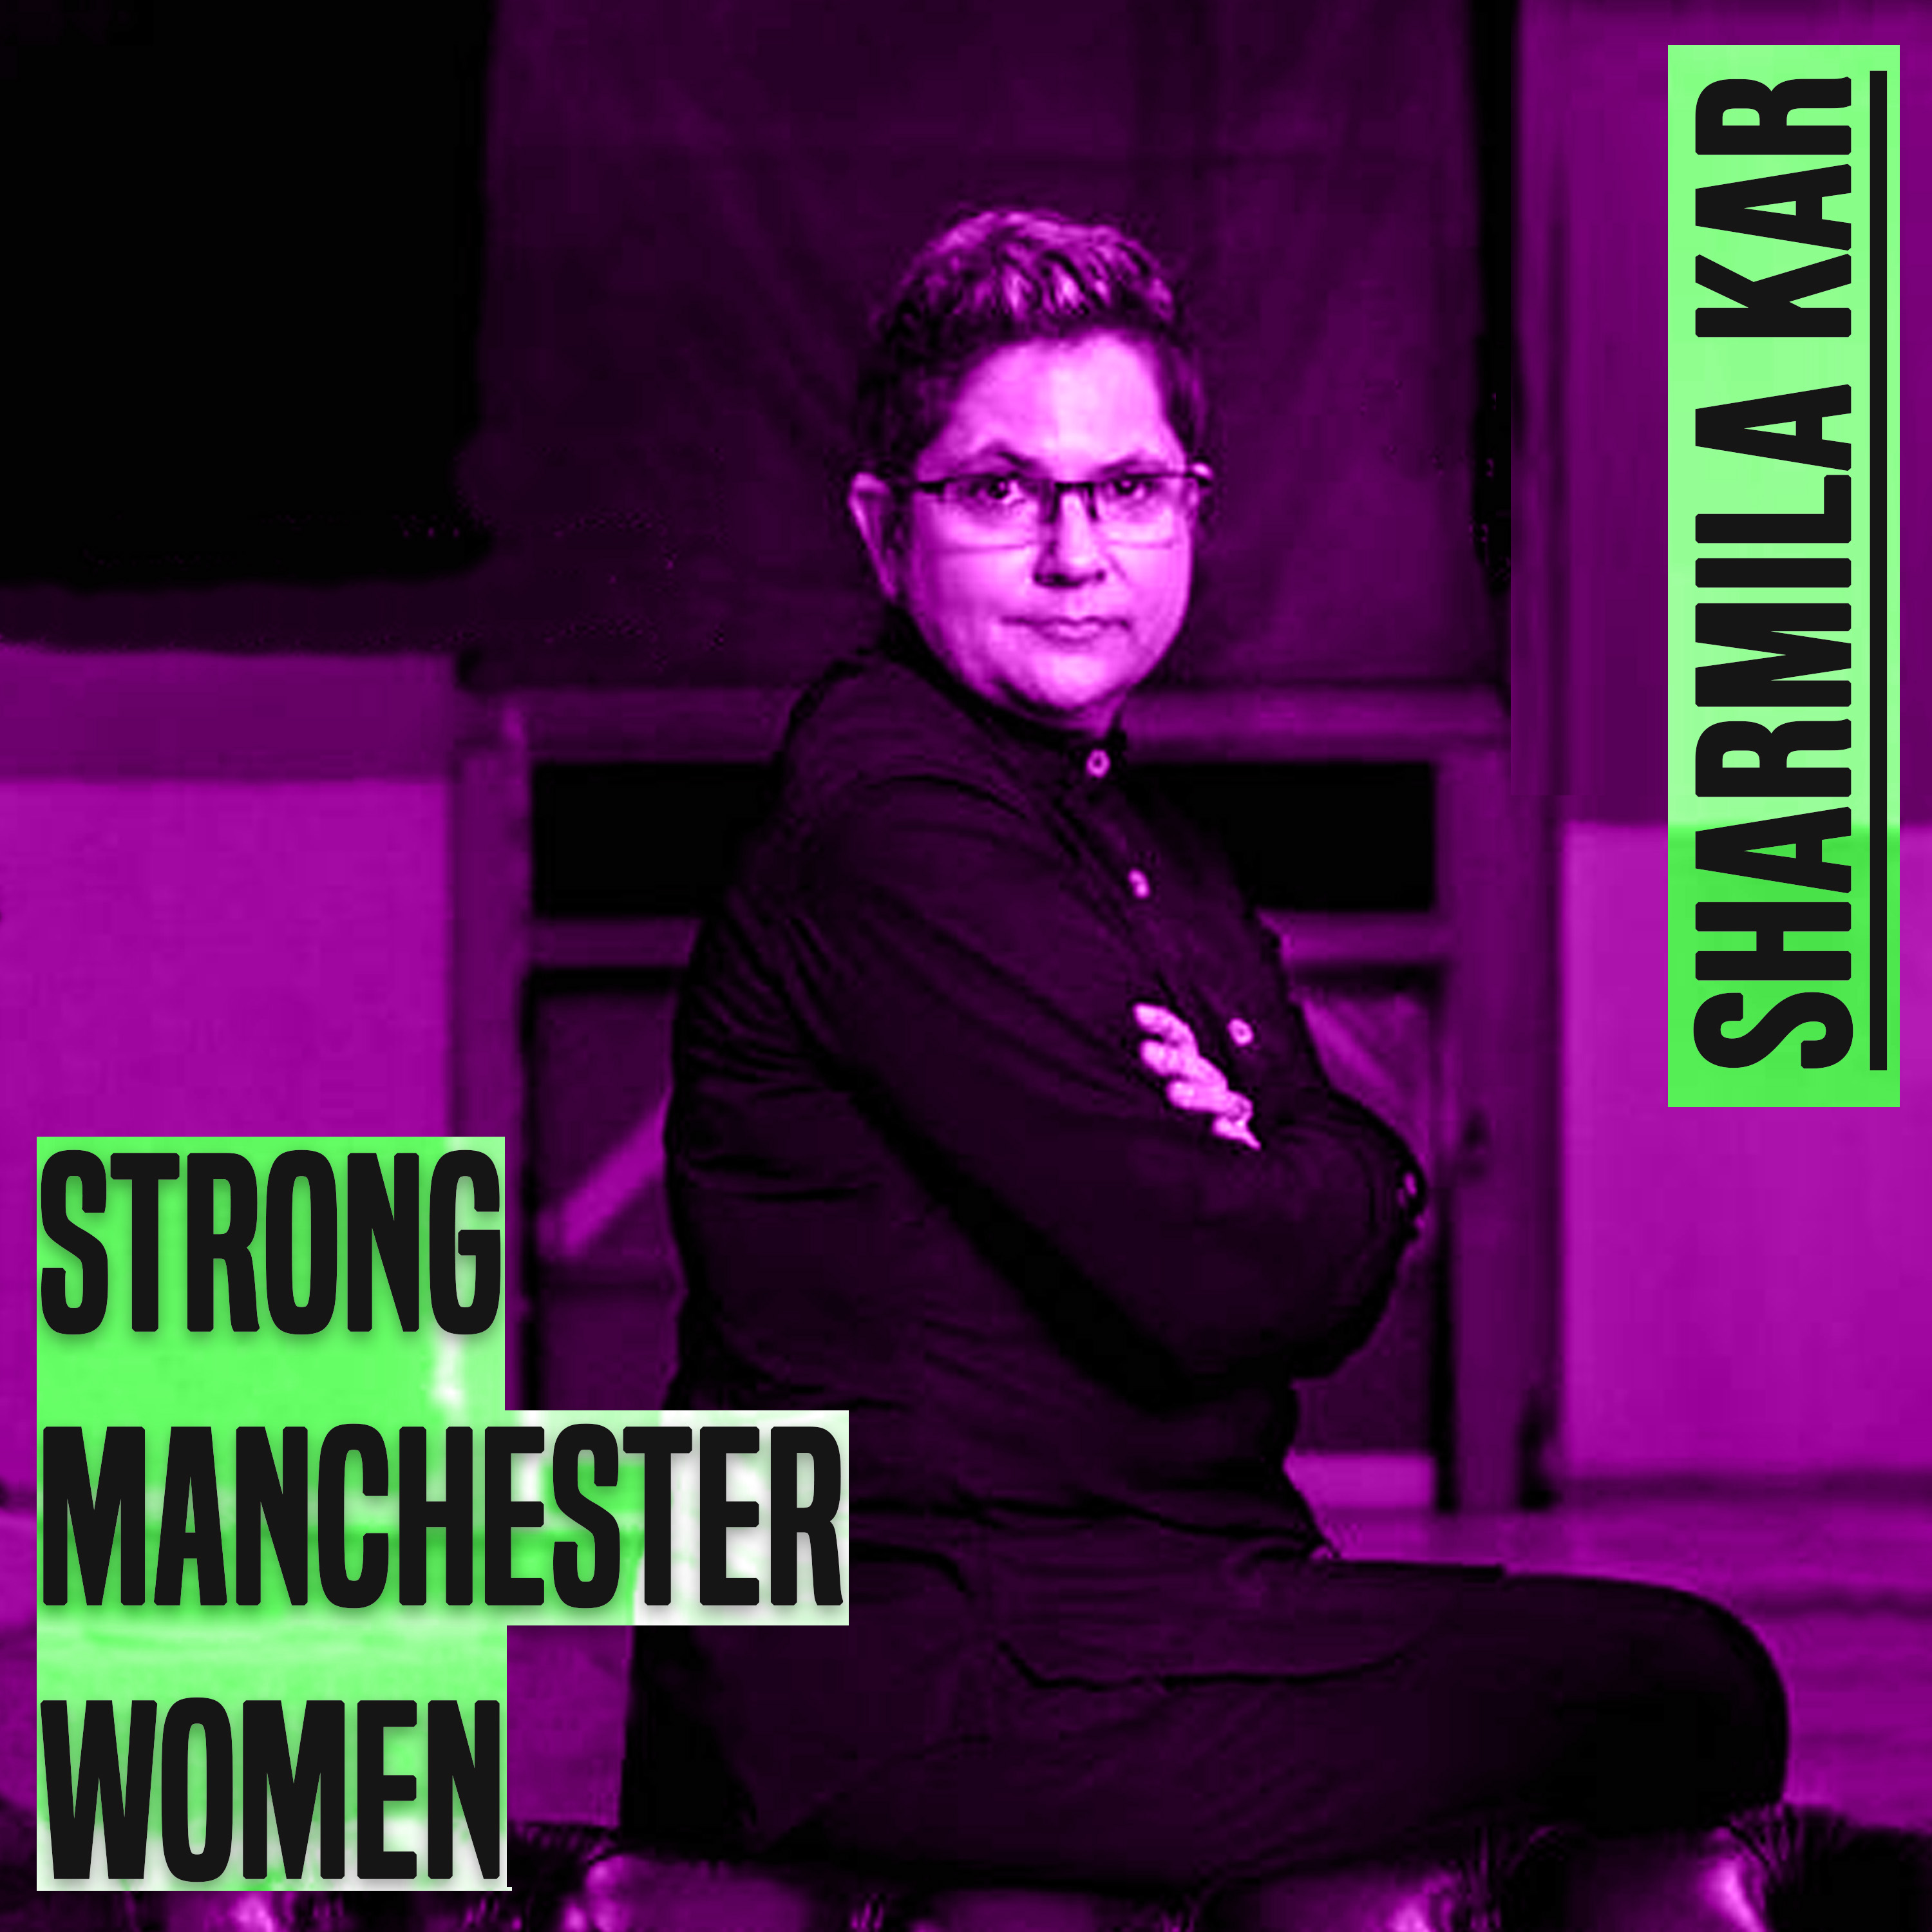 a photo of a woman who is sat down. The photo shows her from her knees up. She has short hair and wears glasses. Her arms are folder and she is looking directly at the camera. The image has a purple tinge. On the left of the seated woman are the words 'strong manchester women' and to the top right of the woman are the words 'Sharmila Kar' Both sets of words are in bold grey type.